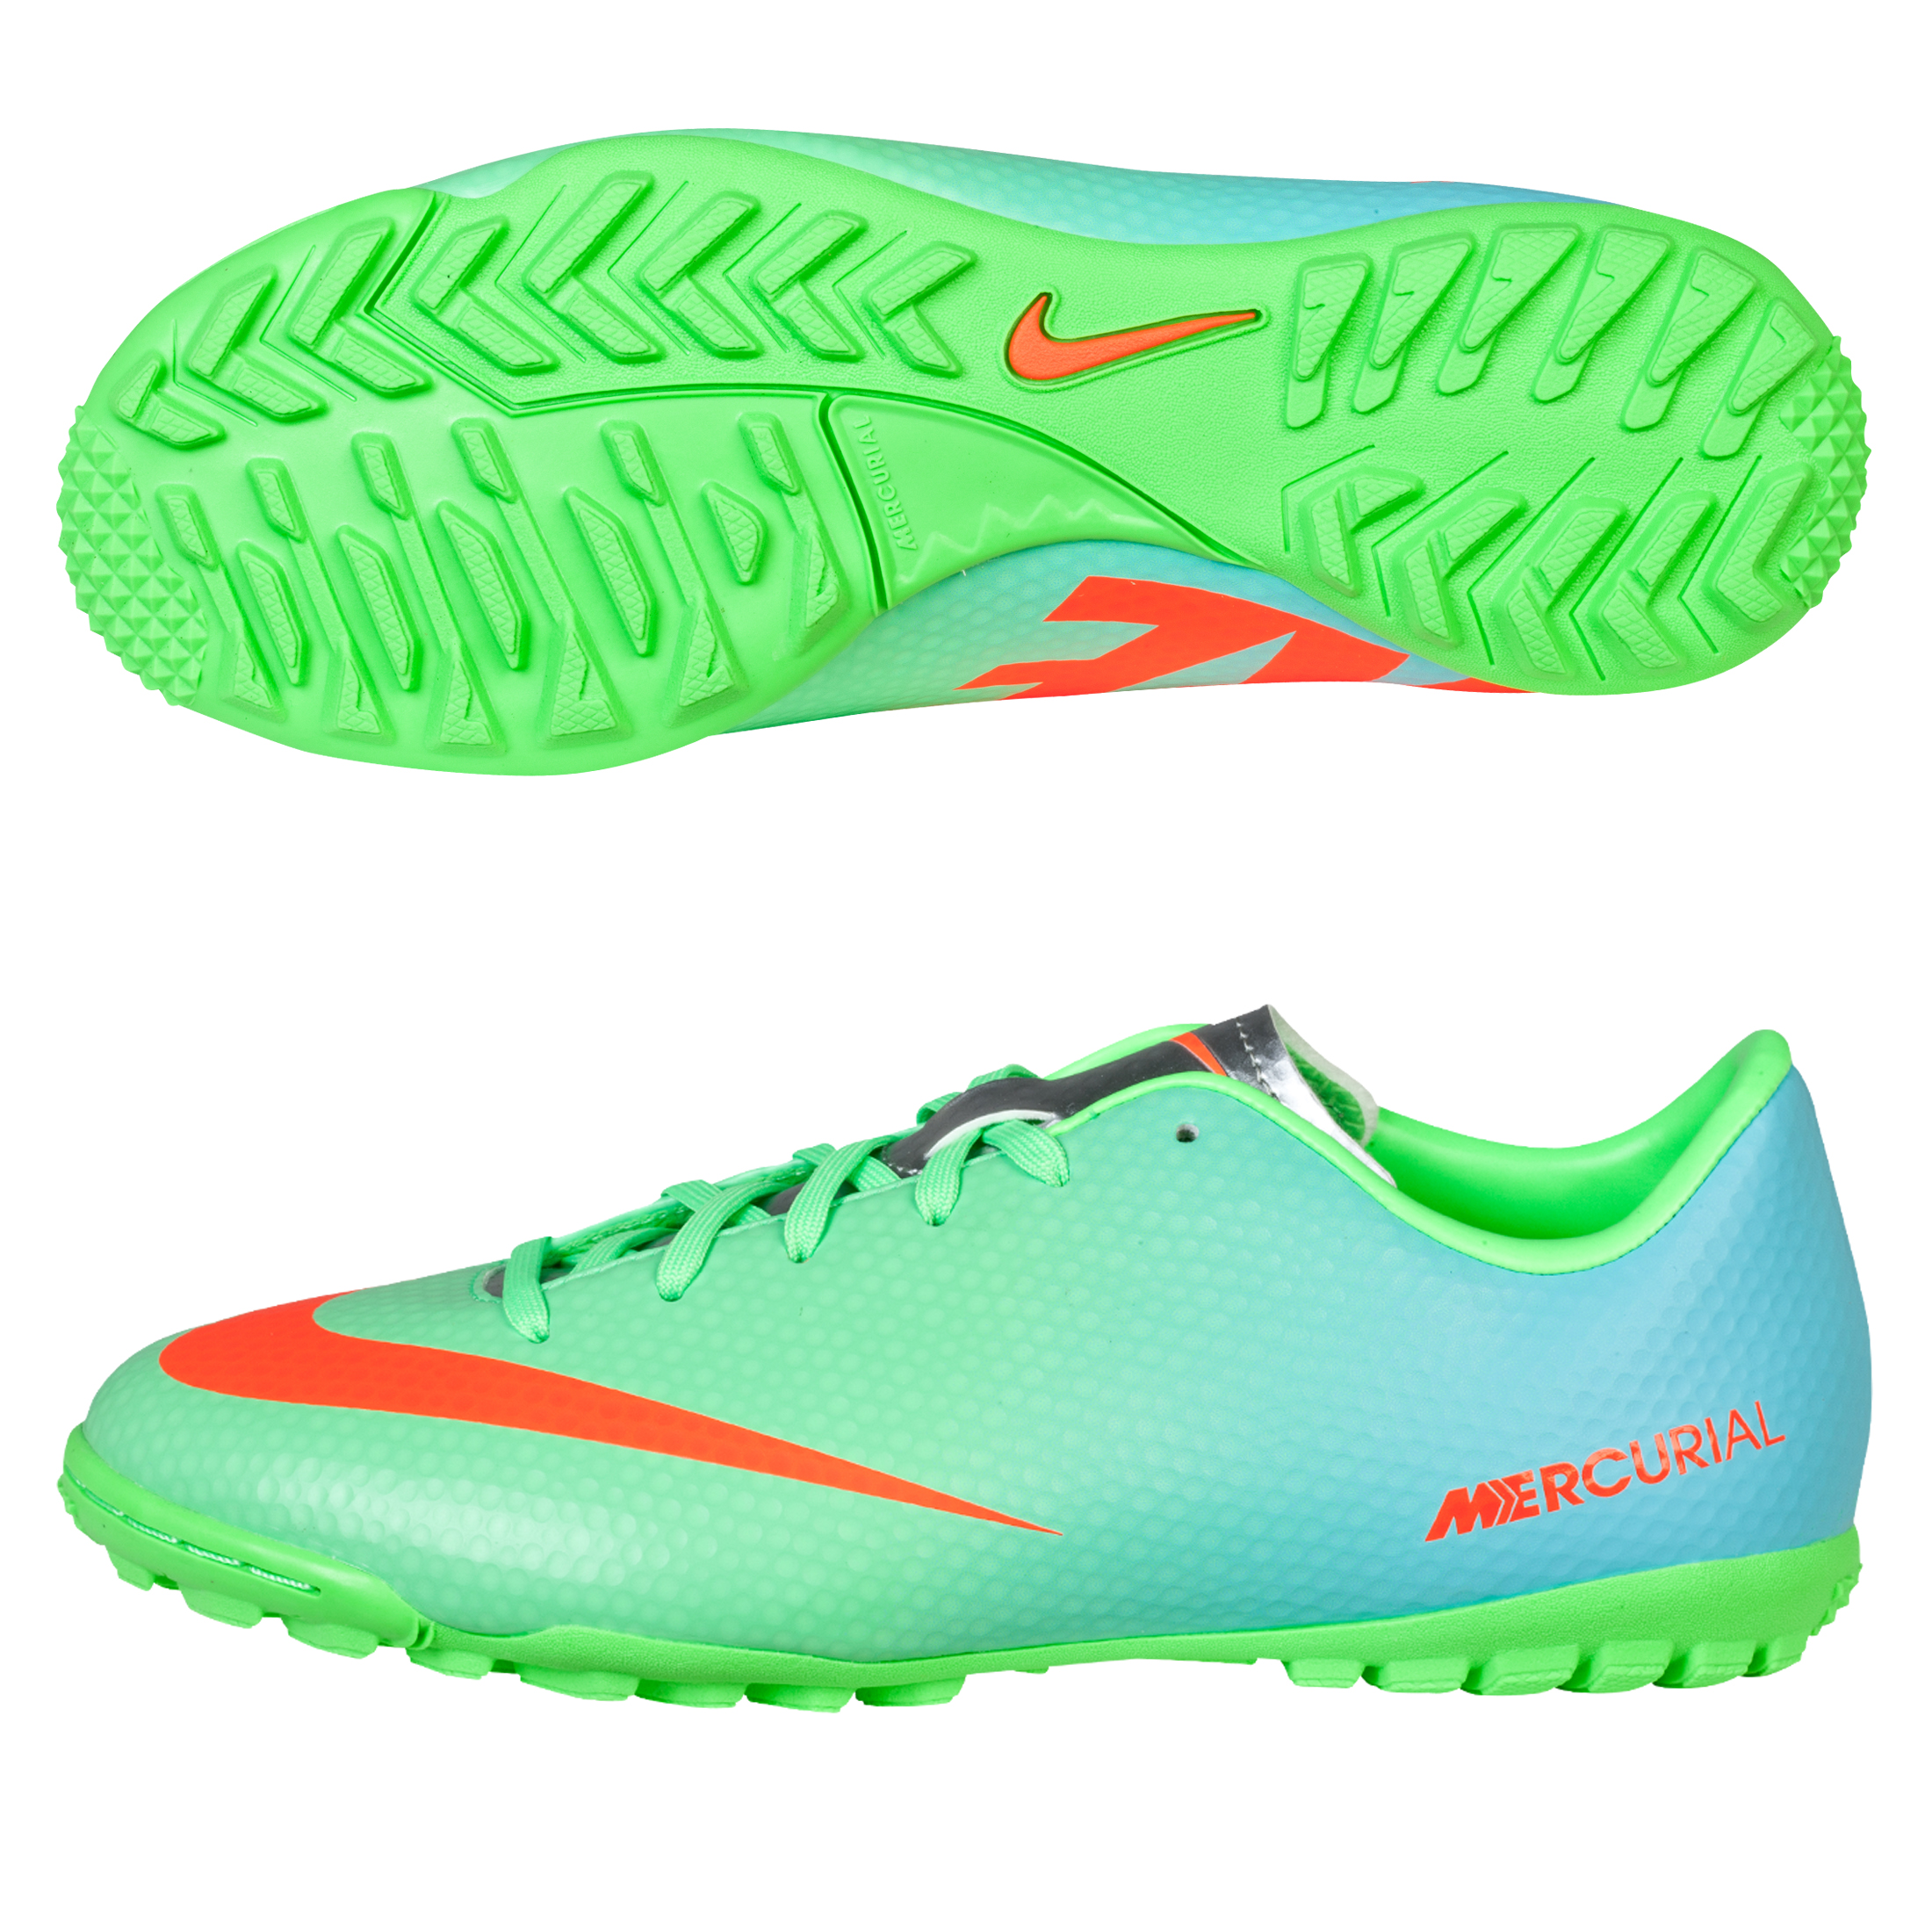 Nike Mercurial Victory IV Astroturf Trainers - Kids Green